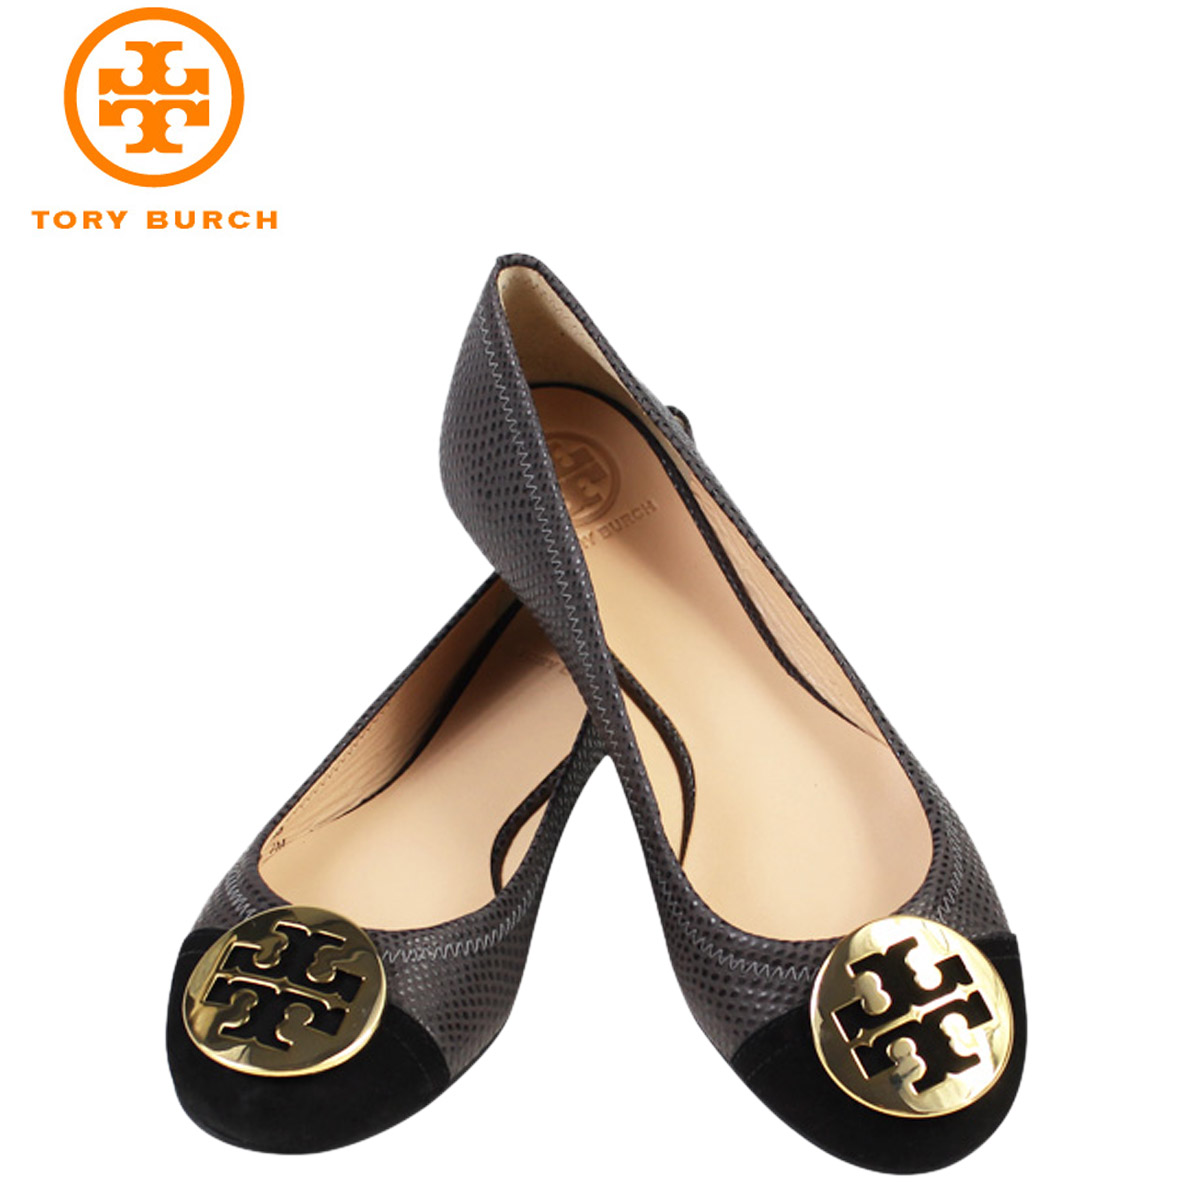 Sugar Online Shop | Rakuten Global Market: Tory Burch TORY BURCH Womens  Serena 2 Ballet flat pumps SERENA 2 BALLET FLAT leather ballet shoes  31148200 056 ...